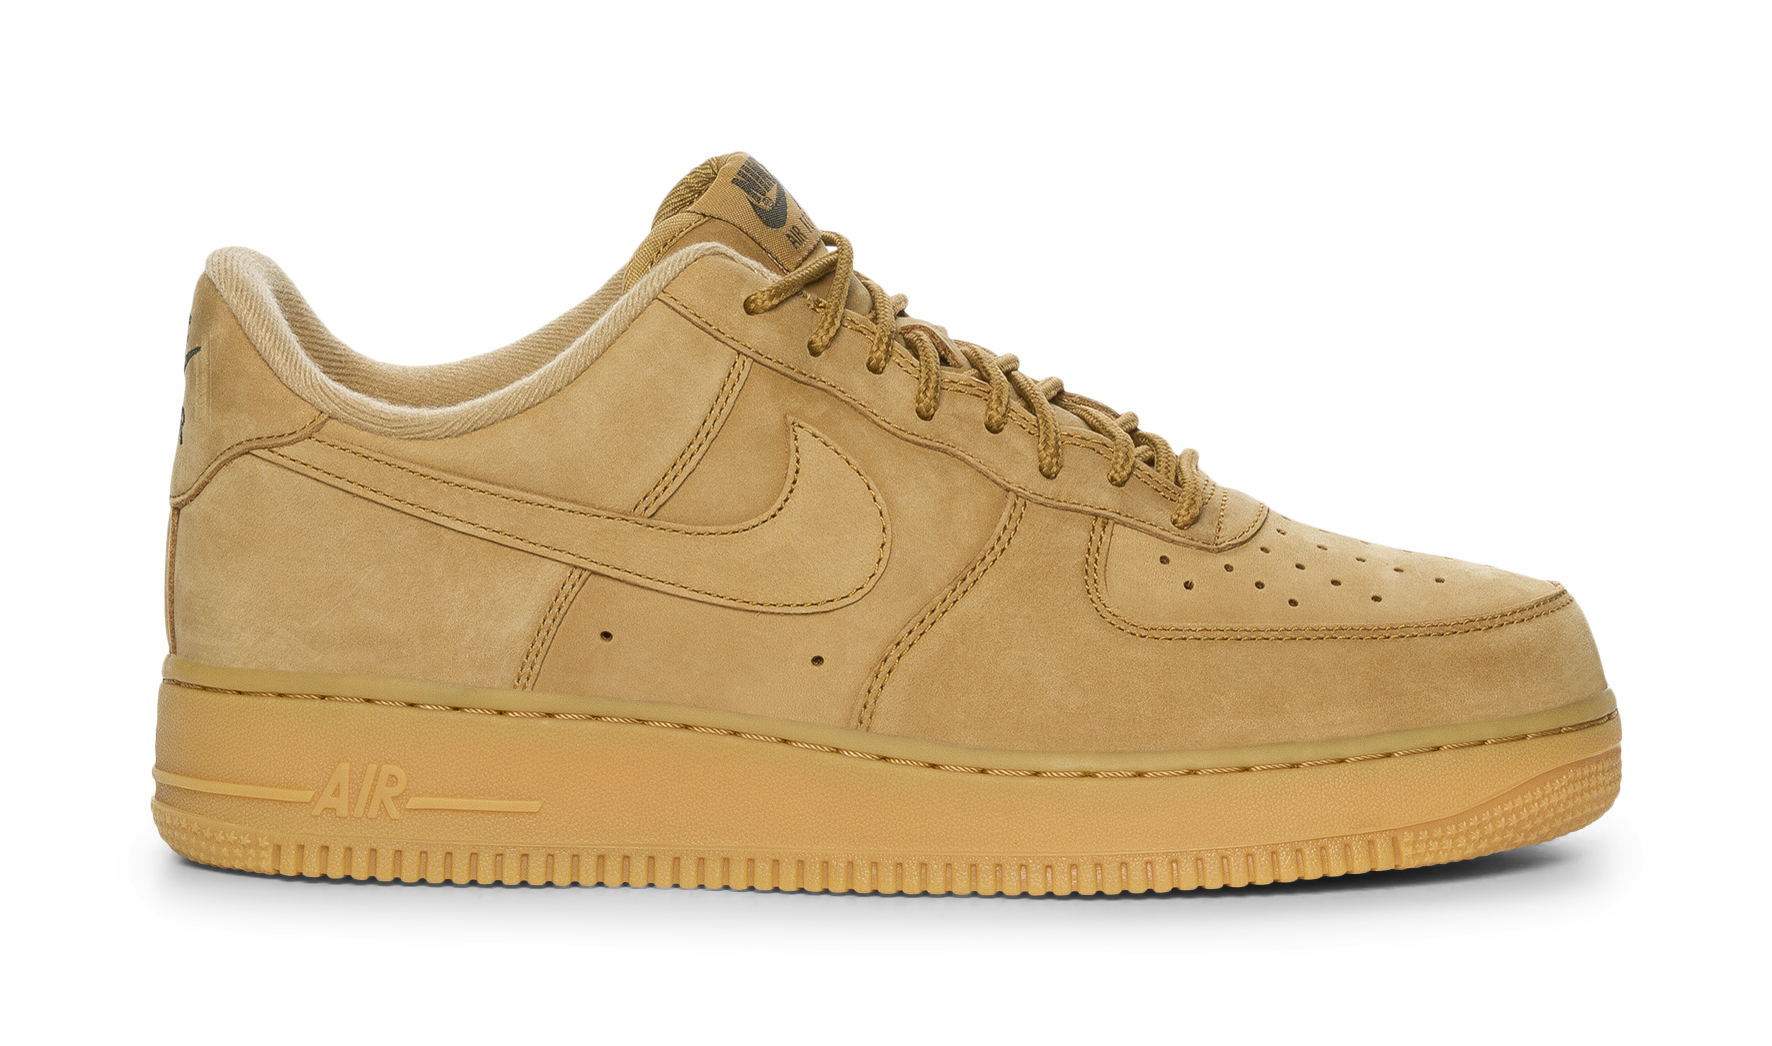 low priced ae7b5 6f44e ... netherlands nike air force 1 07 gul 312334 feetfirst.no d654a 843a2